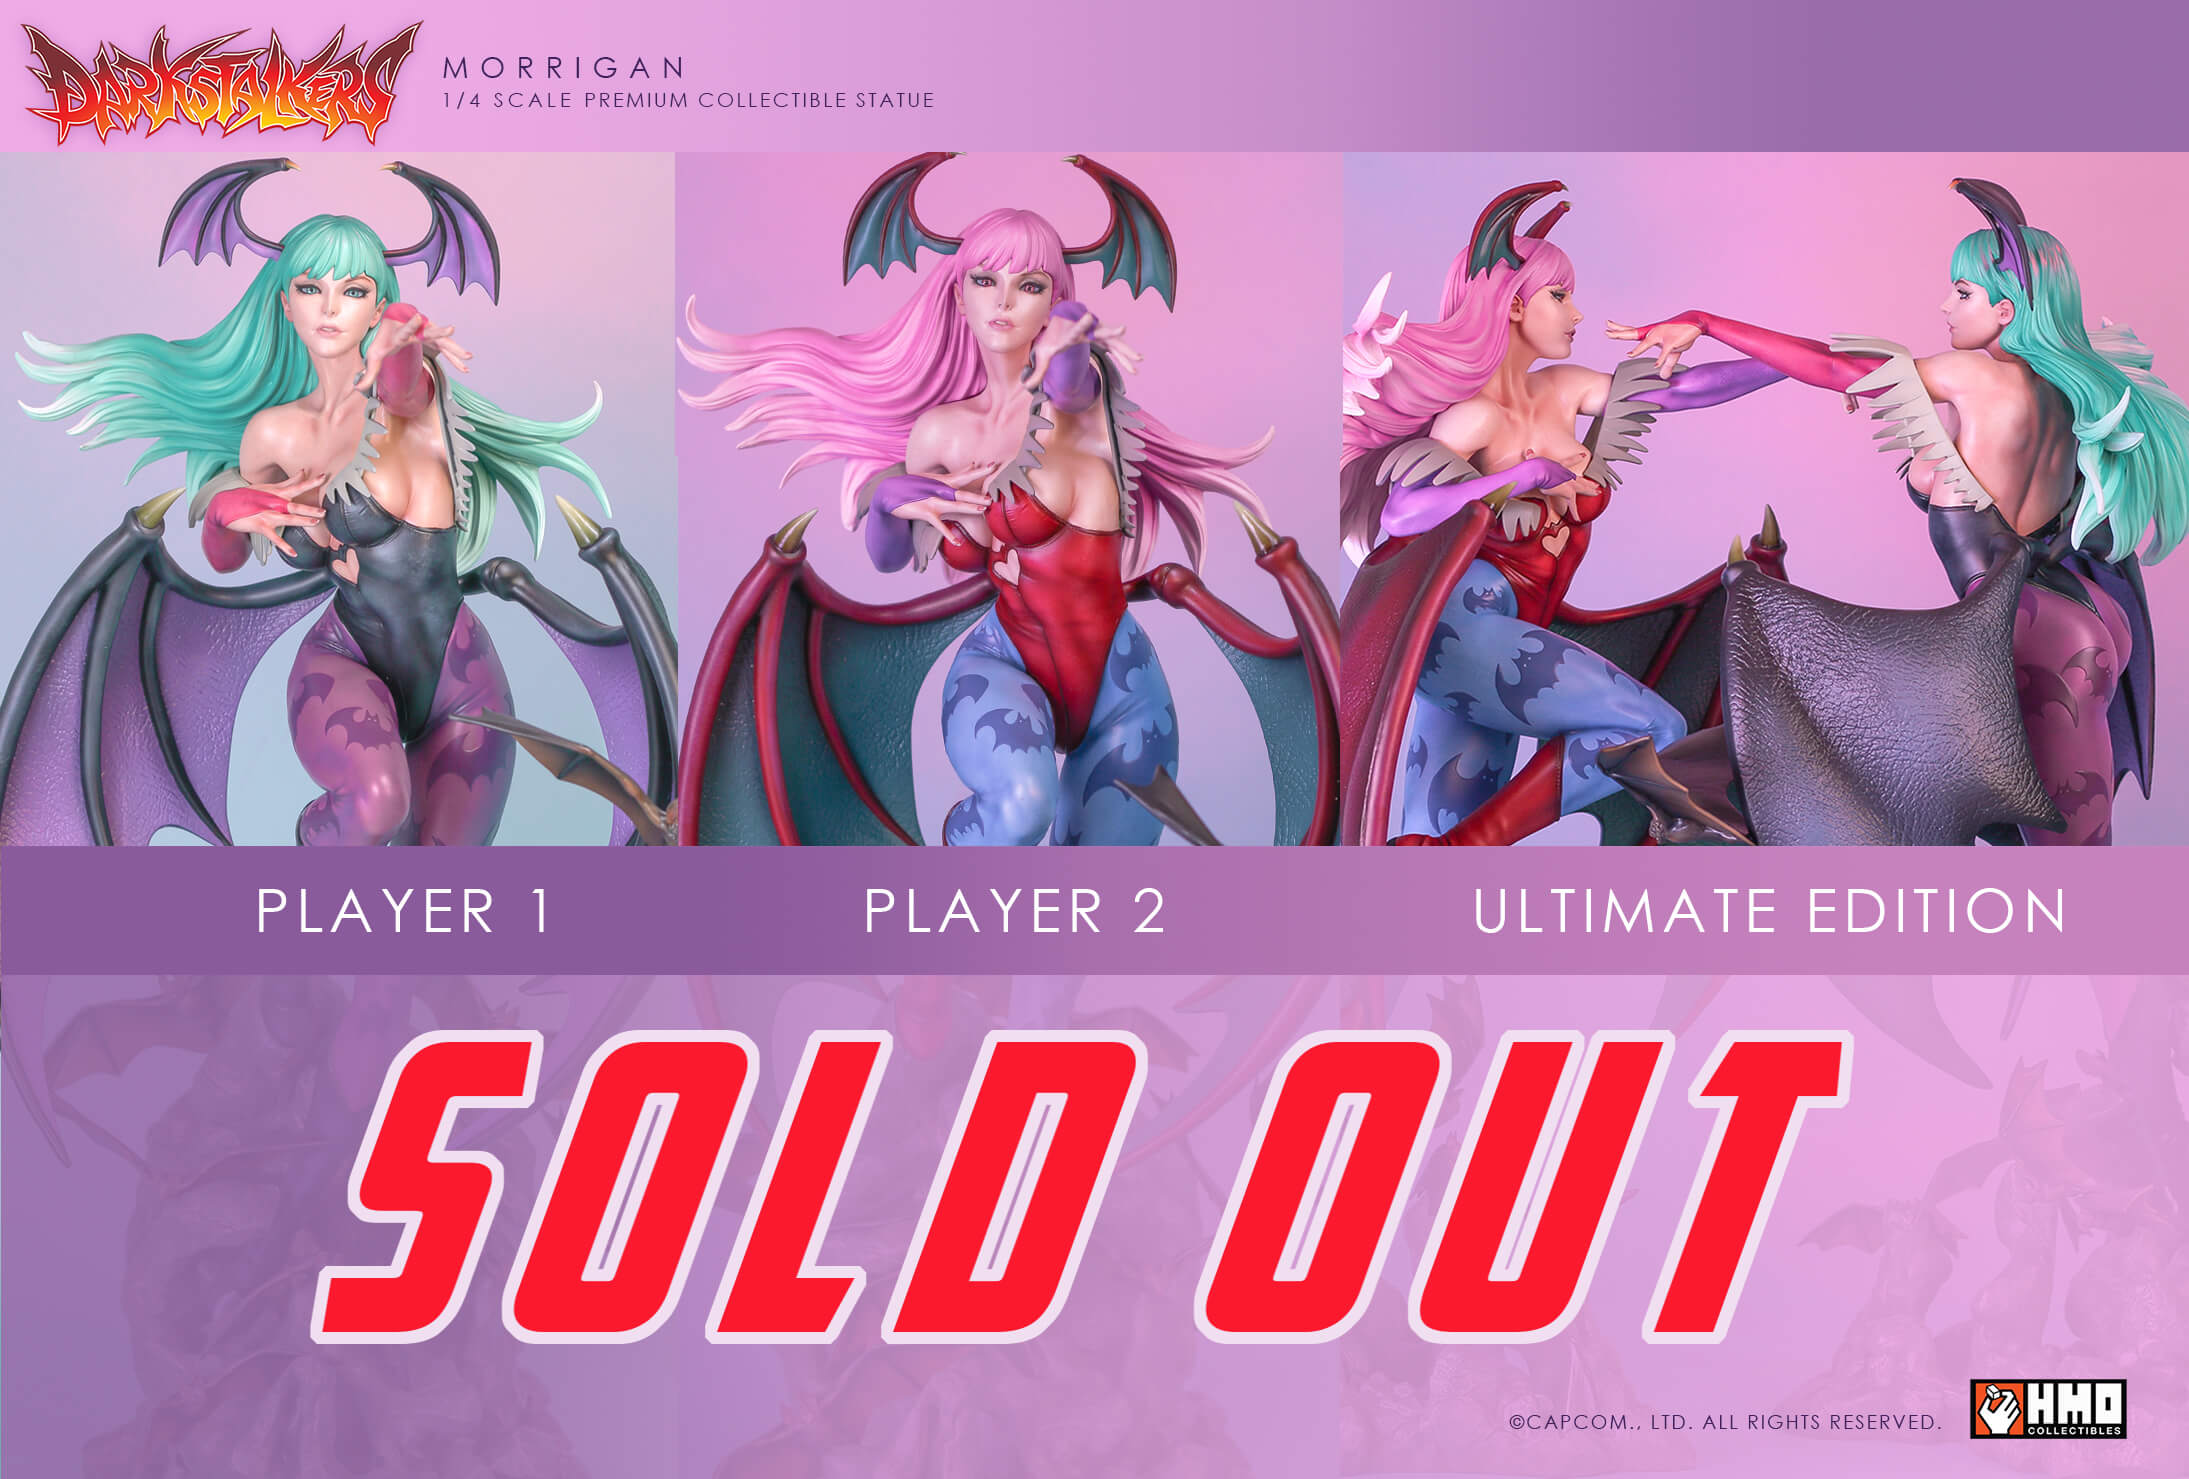 Morrigan is SOLD OUT!